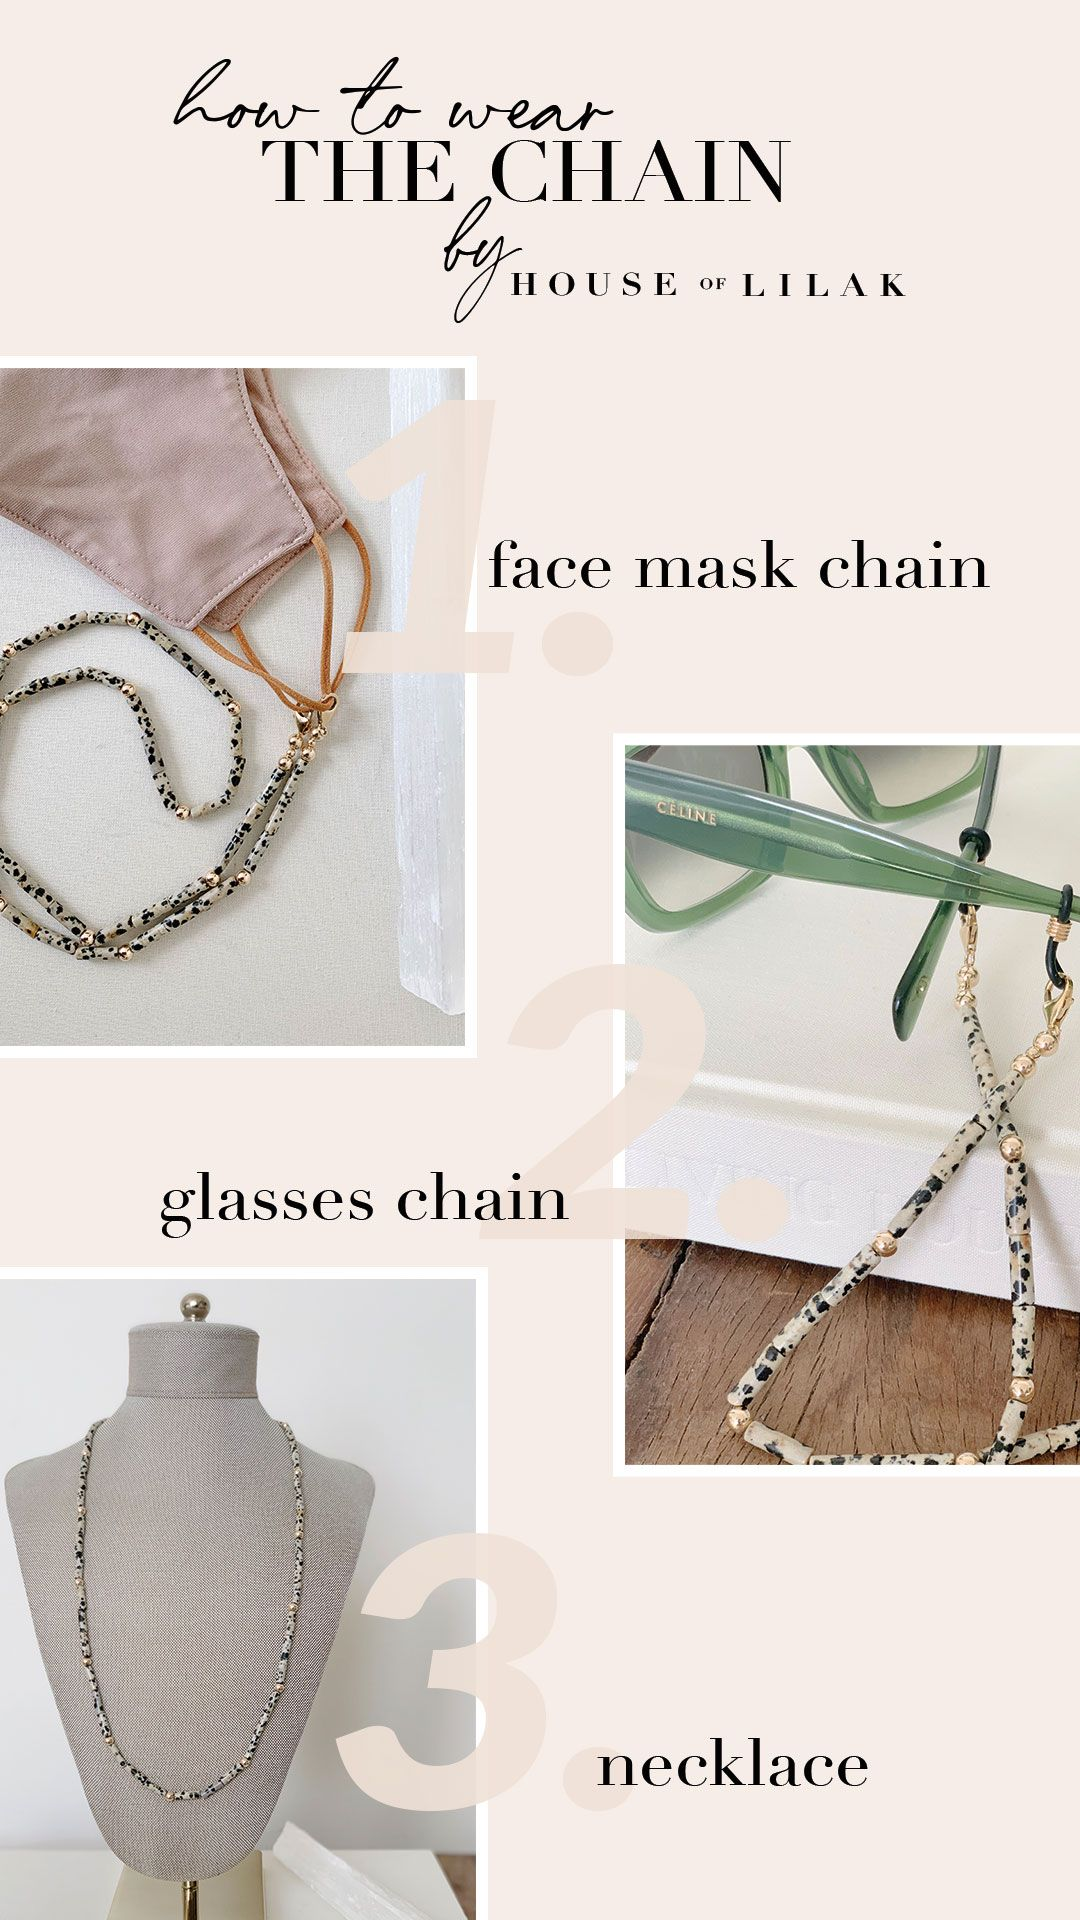 Beaded Glasses Chain Face mask lanyard Handmade Face mask necklace with clips Beaded holder Jasper stone mask holder Beaded mask chain